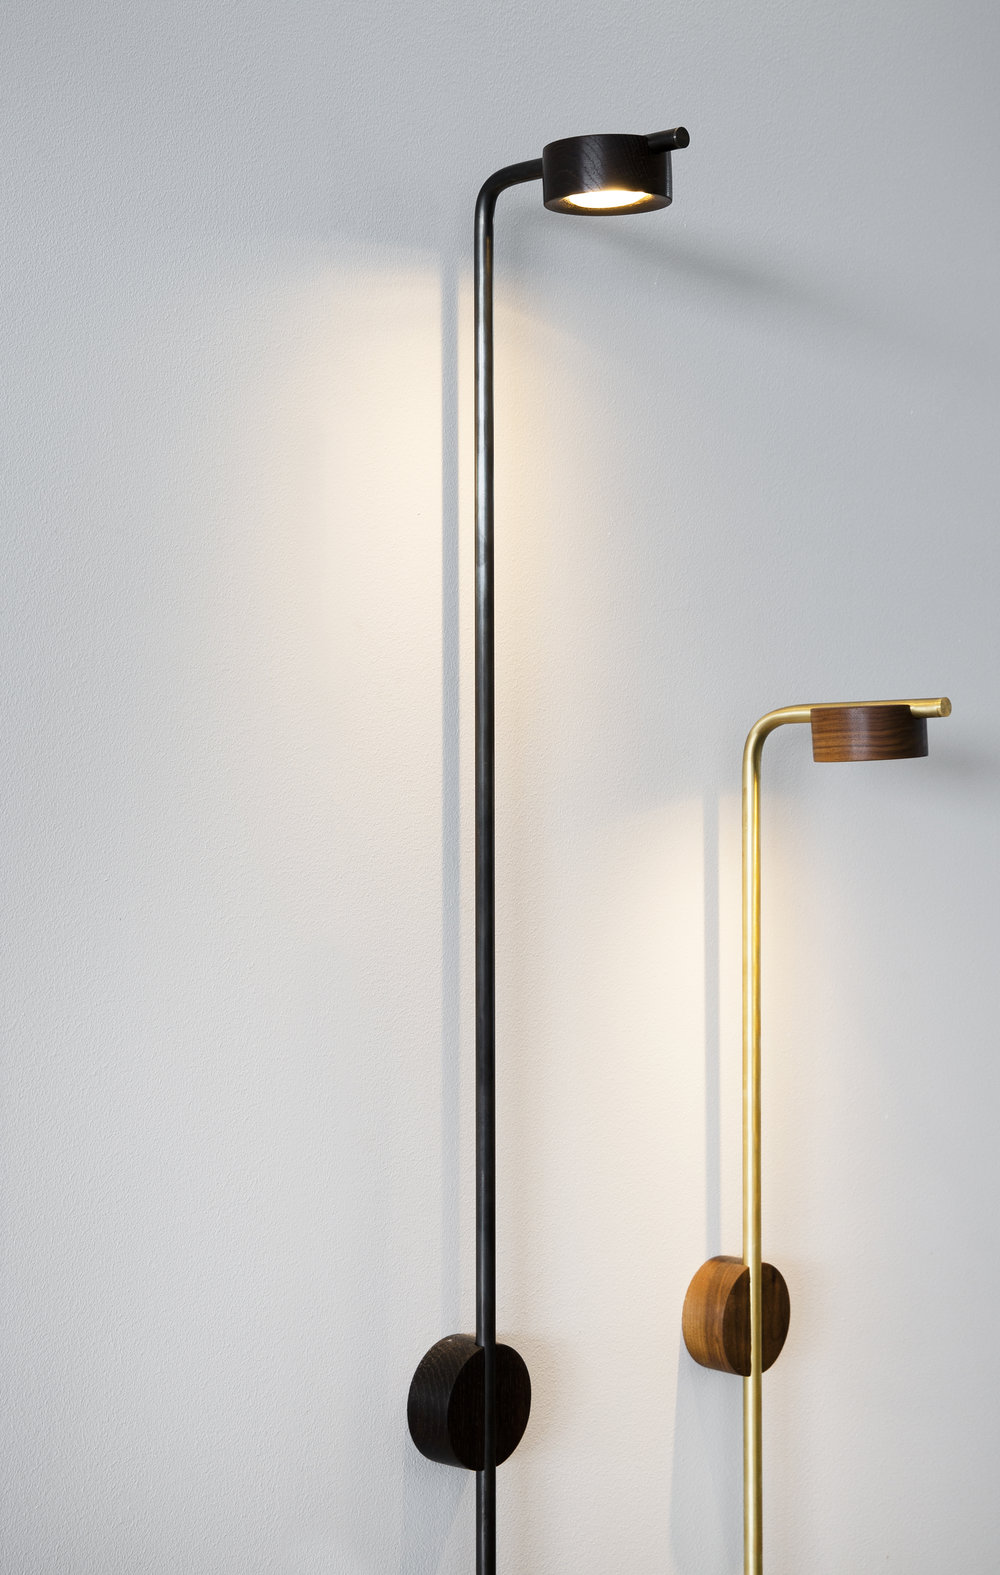 PUCK - Introducing the new PUCK collection both for wall and as a floor lamp. The Puck has a variety of usefulness of options.